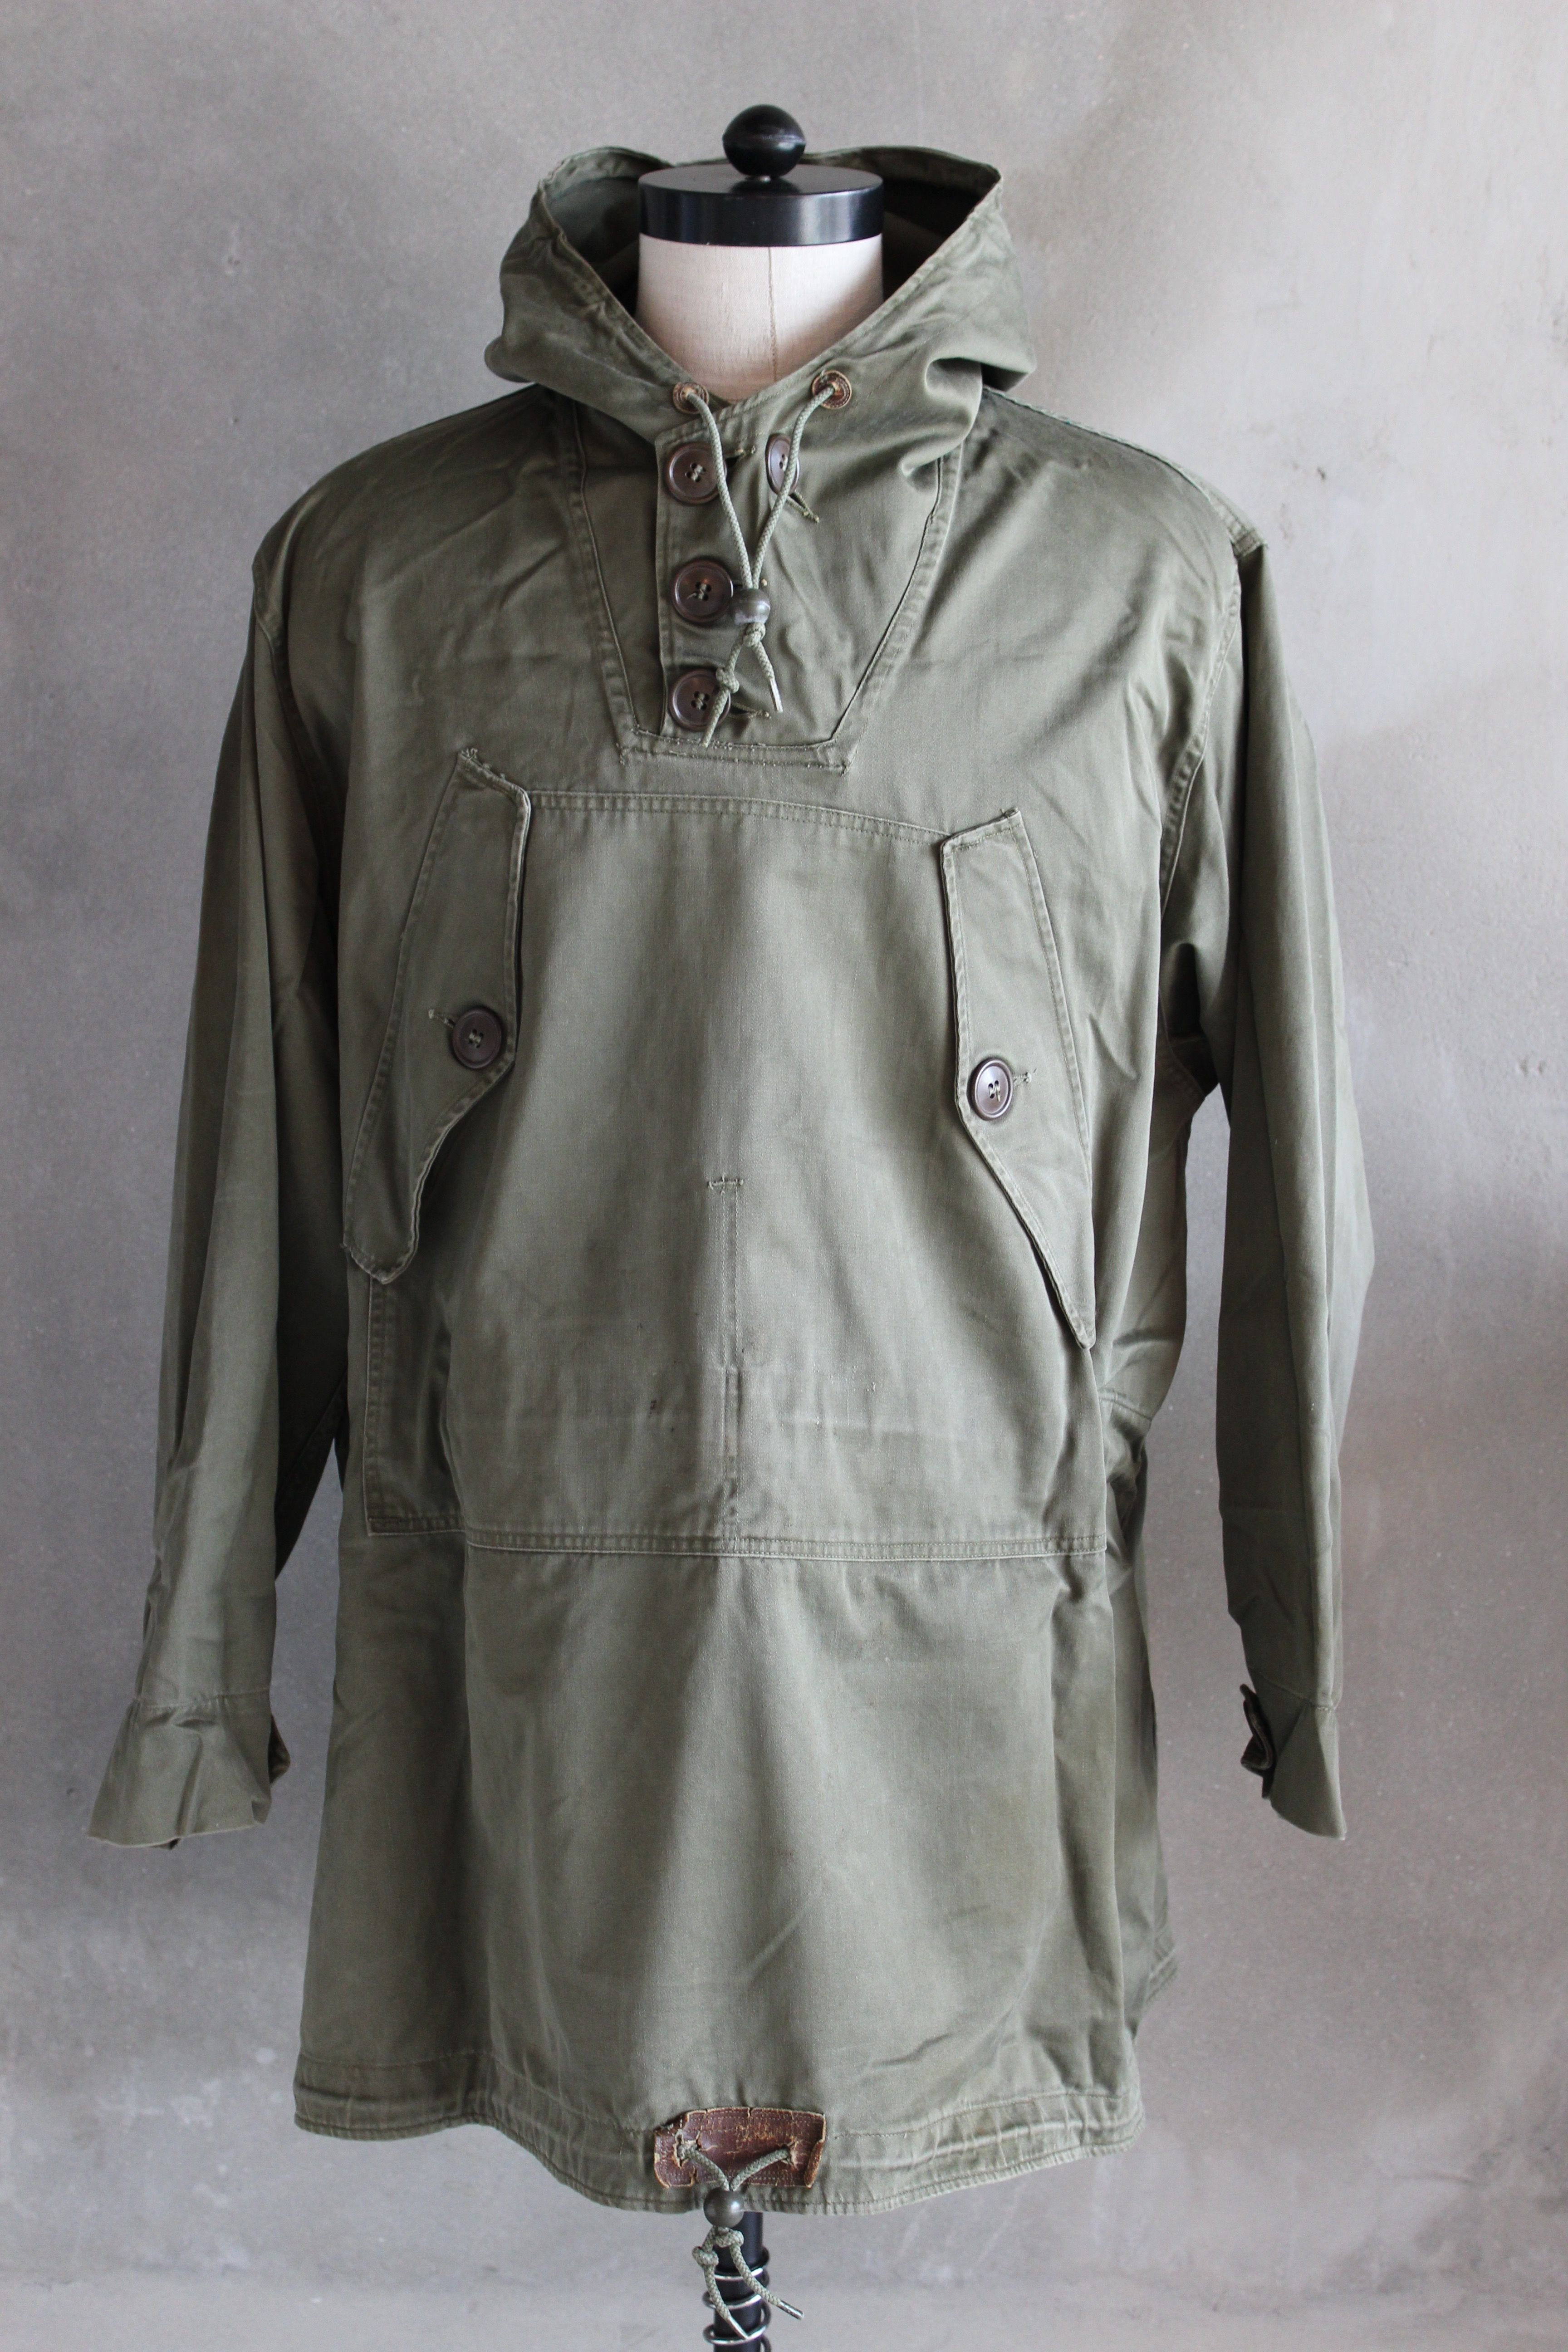 US Army M43 Parka (dated 1948).